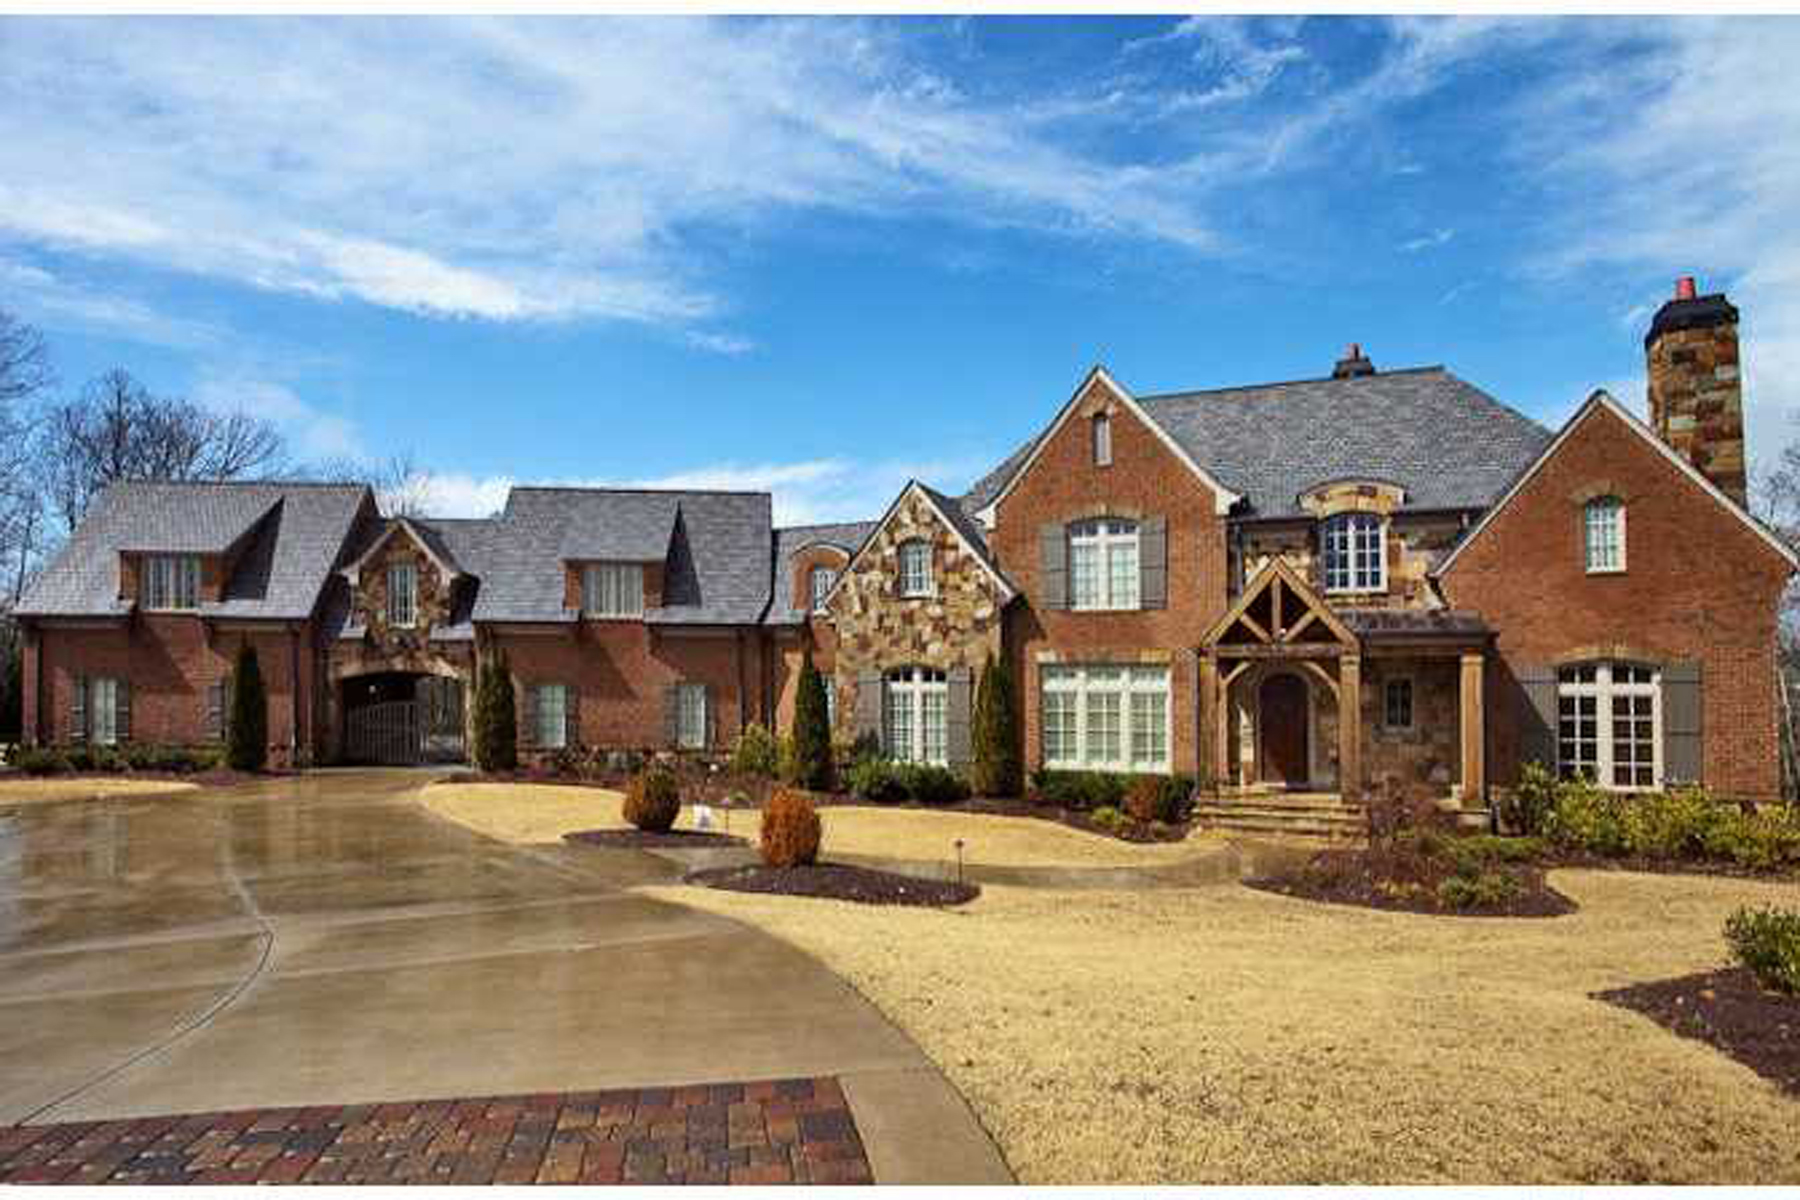 Property For Sale at Entertainer's Dream Home On 3+ Acres